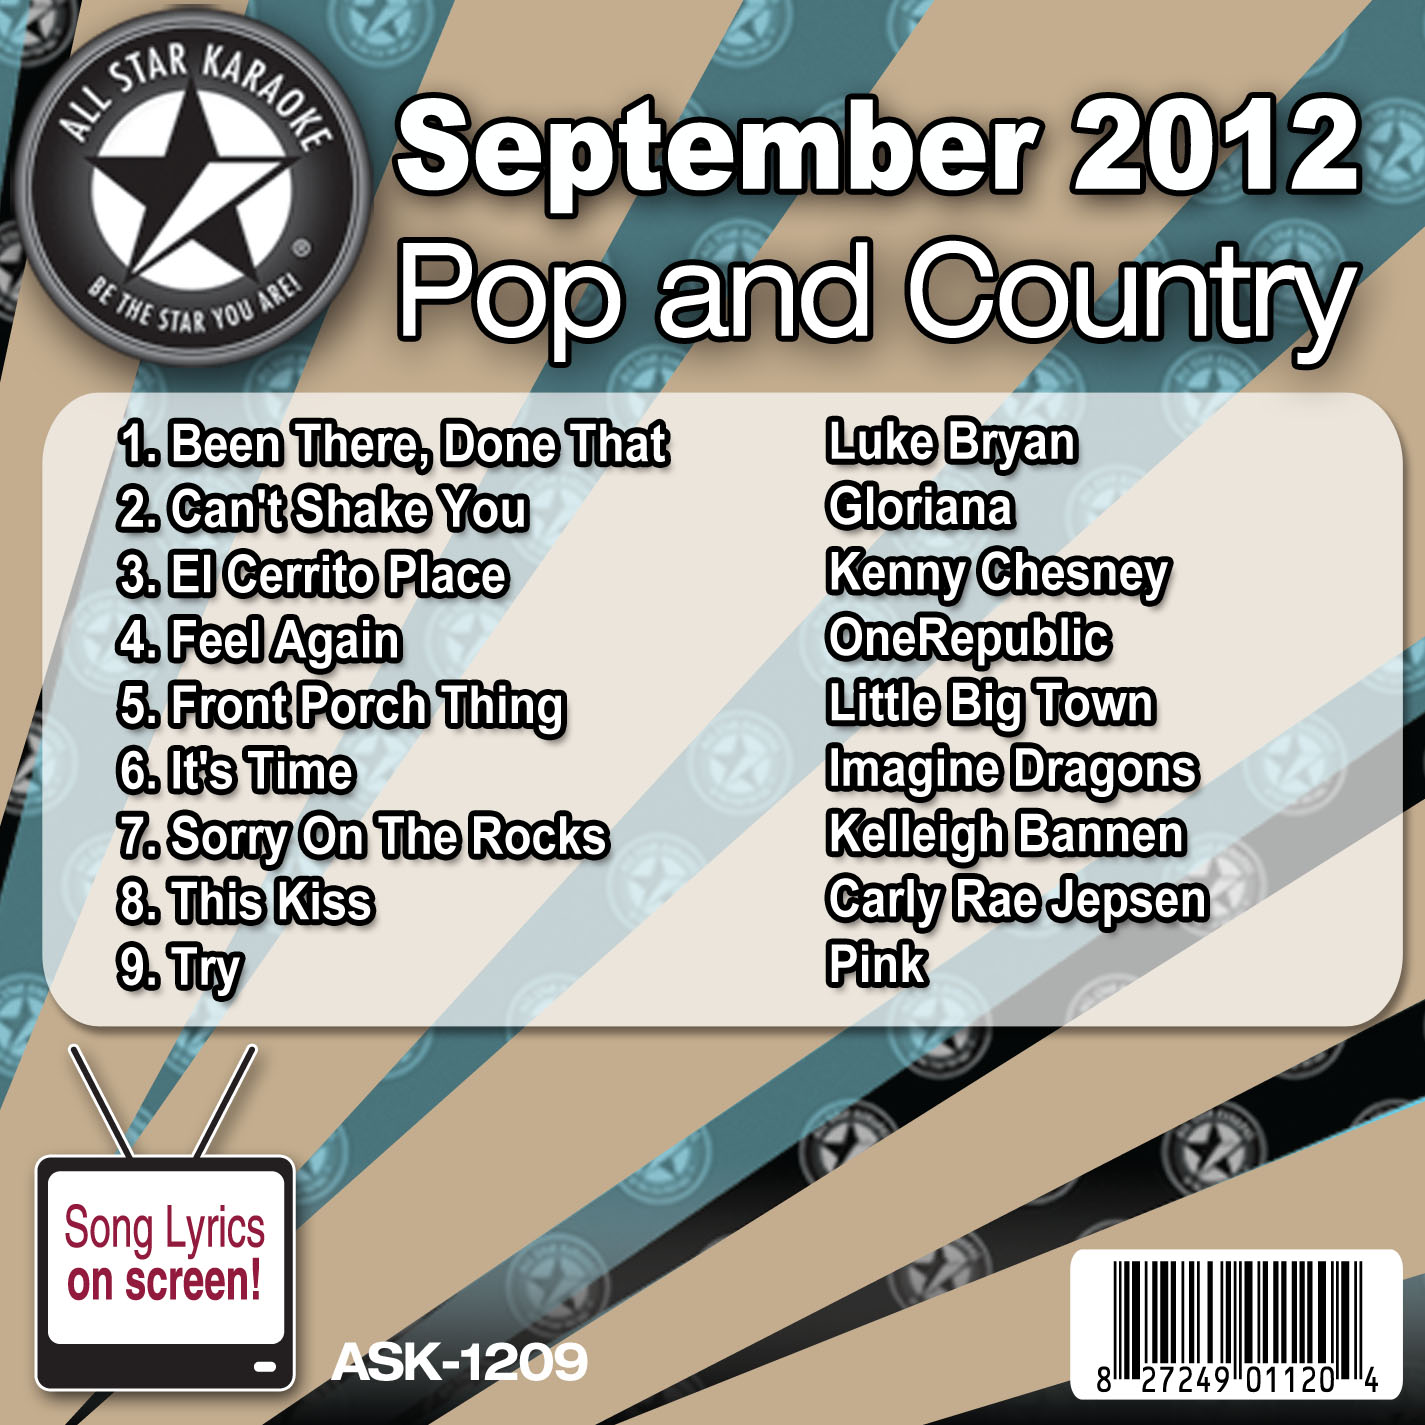 Karaoke Korner - September 2012 Pop and Country Hits Volume 1